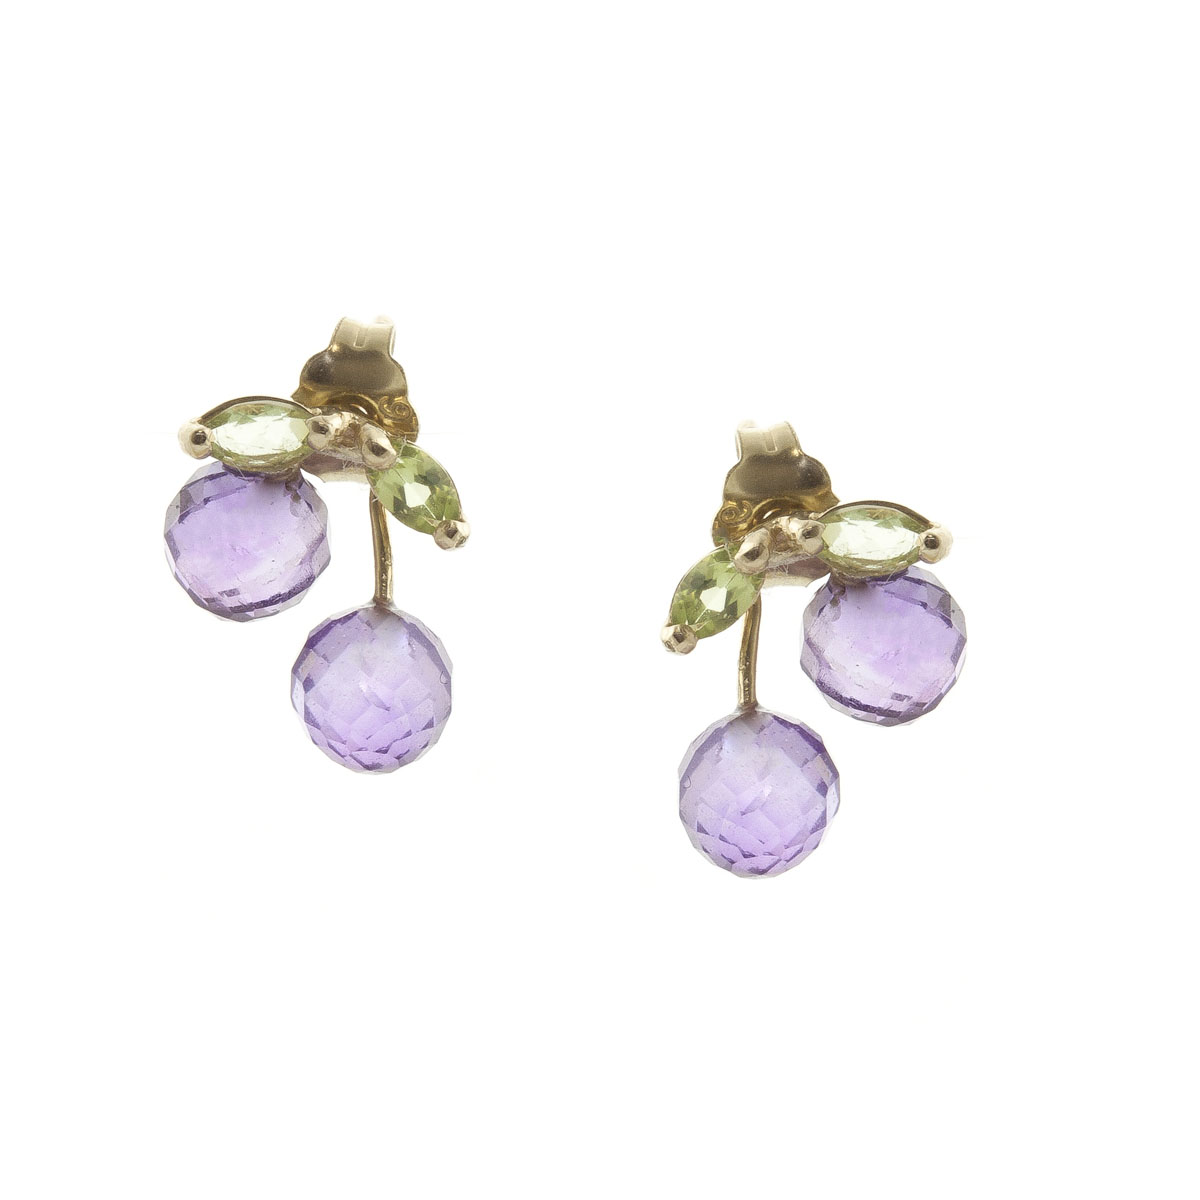 Amethyst & Peridot Cherry Drop Stud Earrings in 9ct Gold